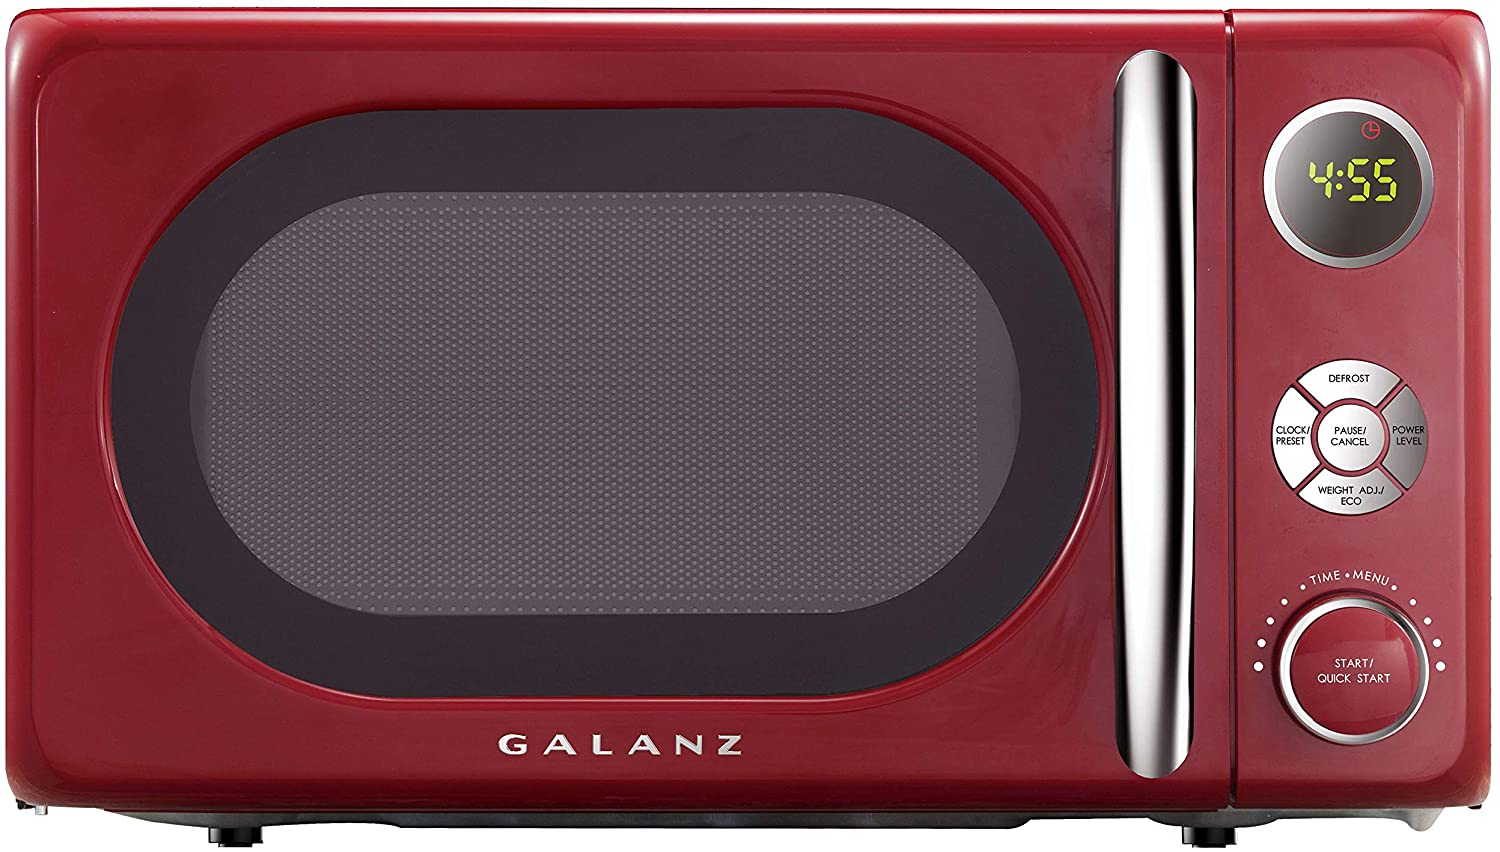 A Red Galanz Microwave oven